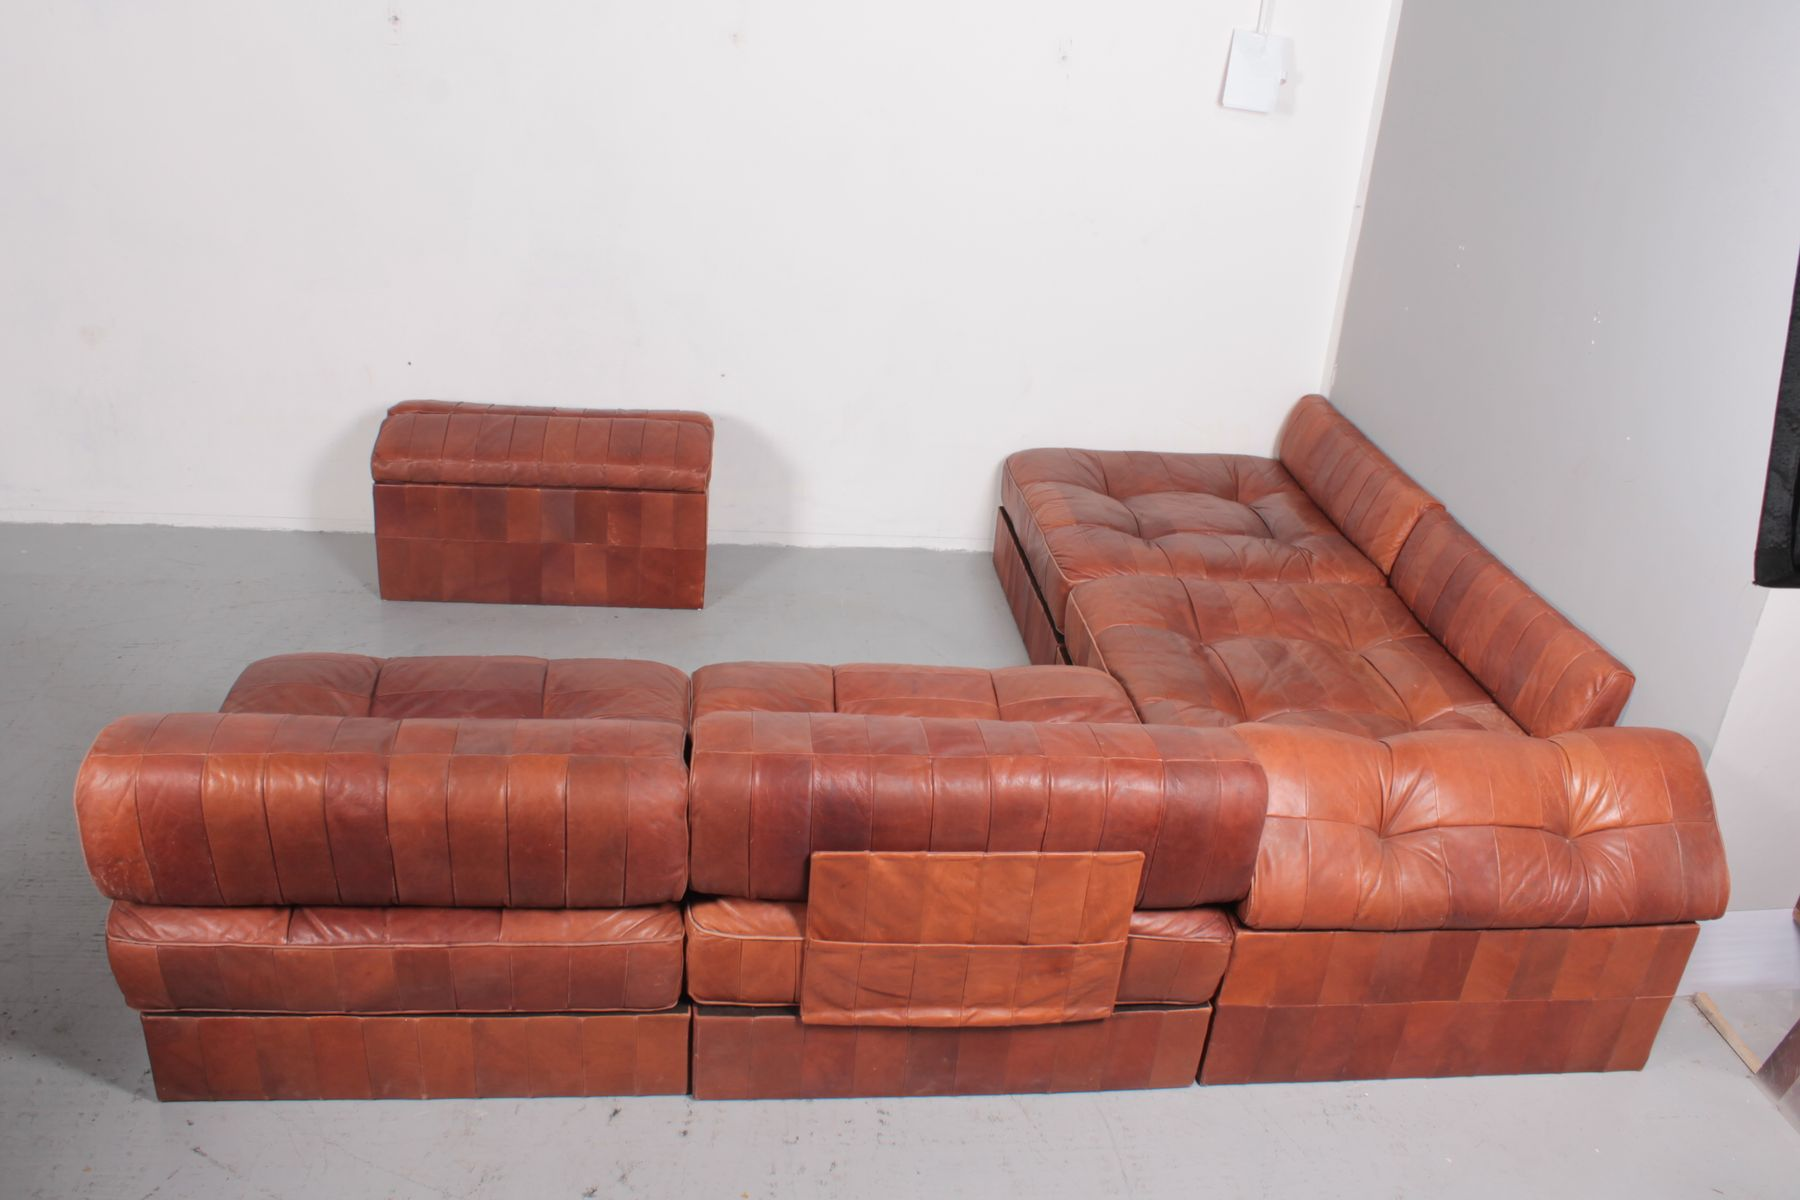 ds88 cognac leather modular sofa from de sede 1975 for sale at pamono. Black Bedroom Furniture Sets. Home Design Ideas